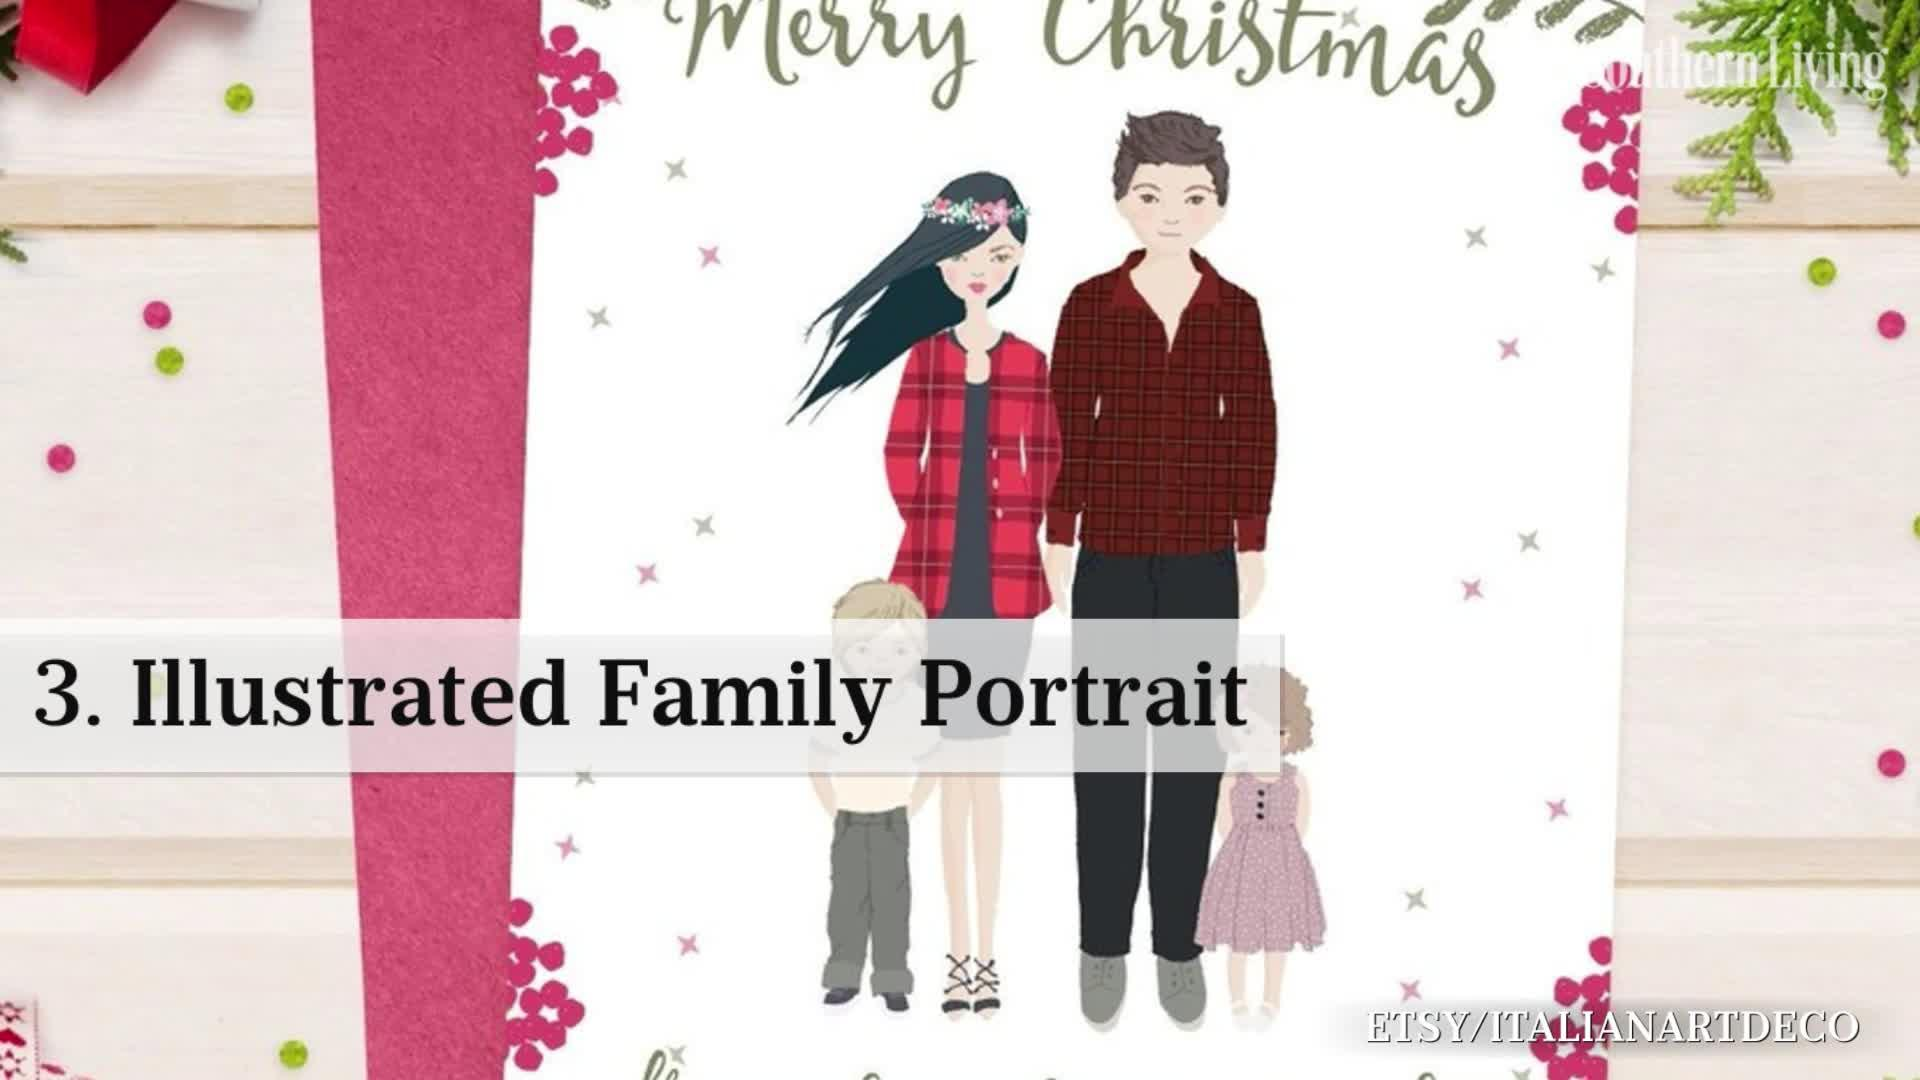 Our Favorite Festive Christmas Card Designs from Etsy